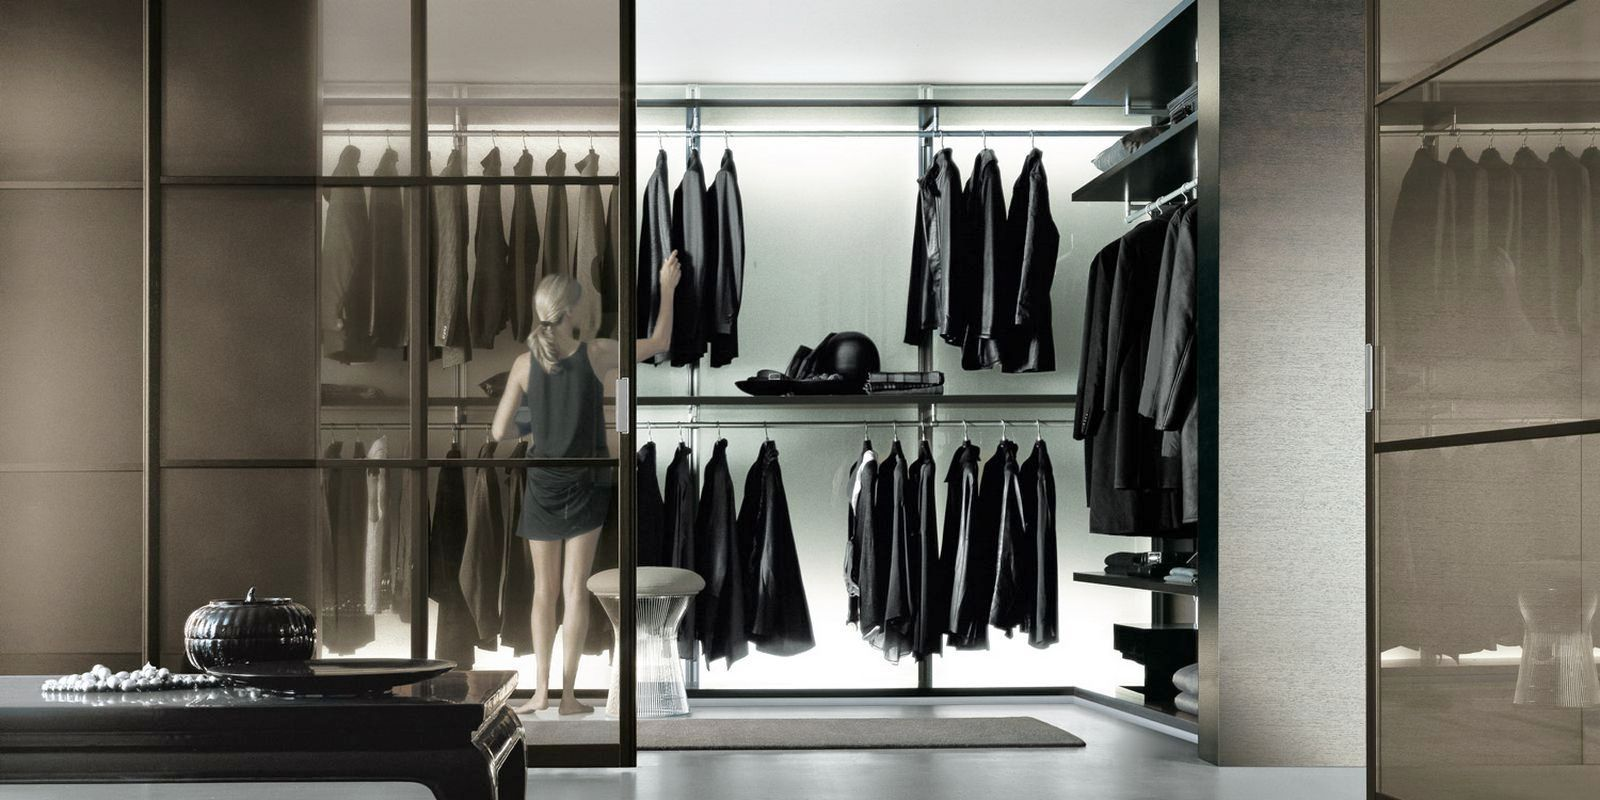 The Best Modern Walk In Closets Glass Walking Closet Things Going Into Kane 39 S House Pinterest